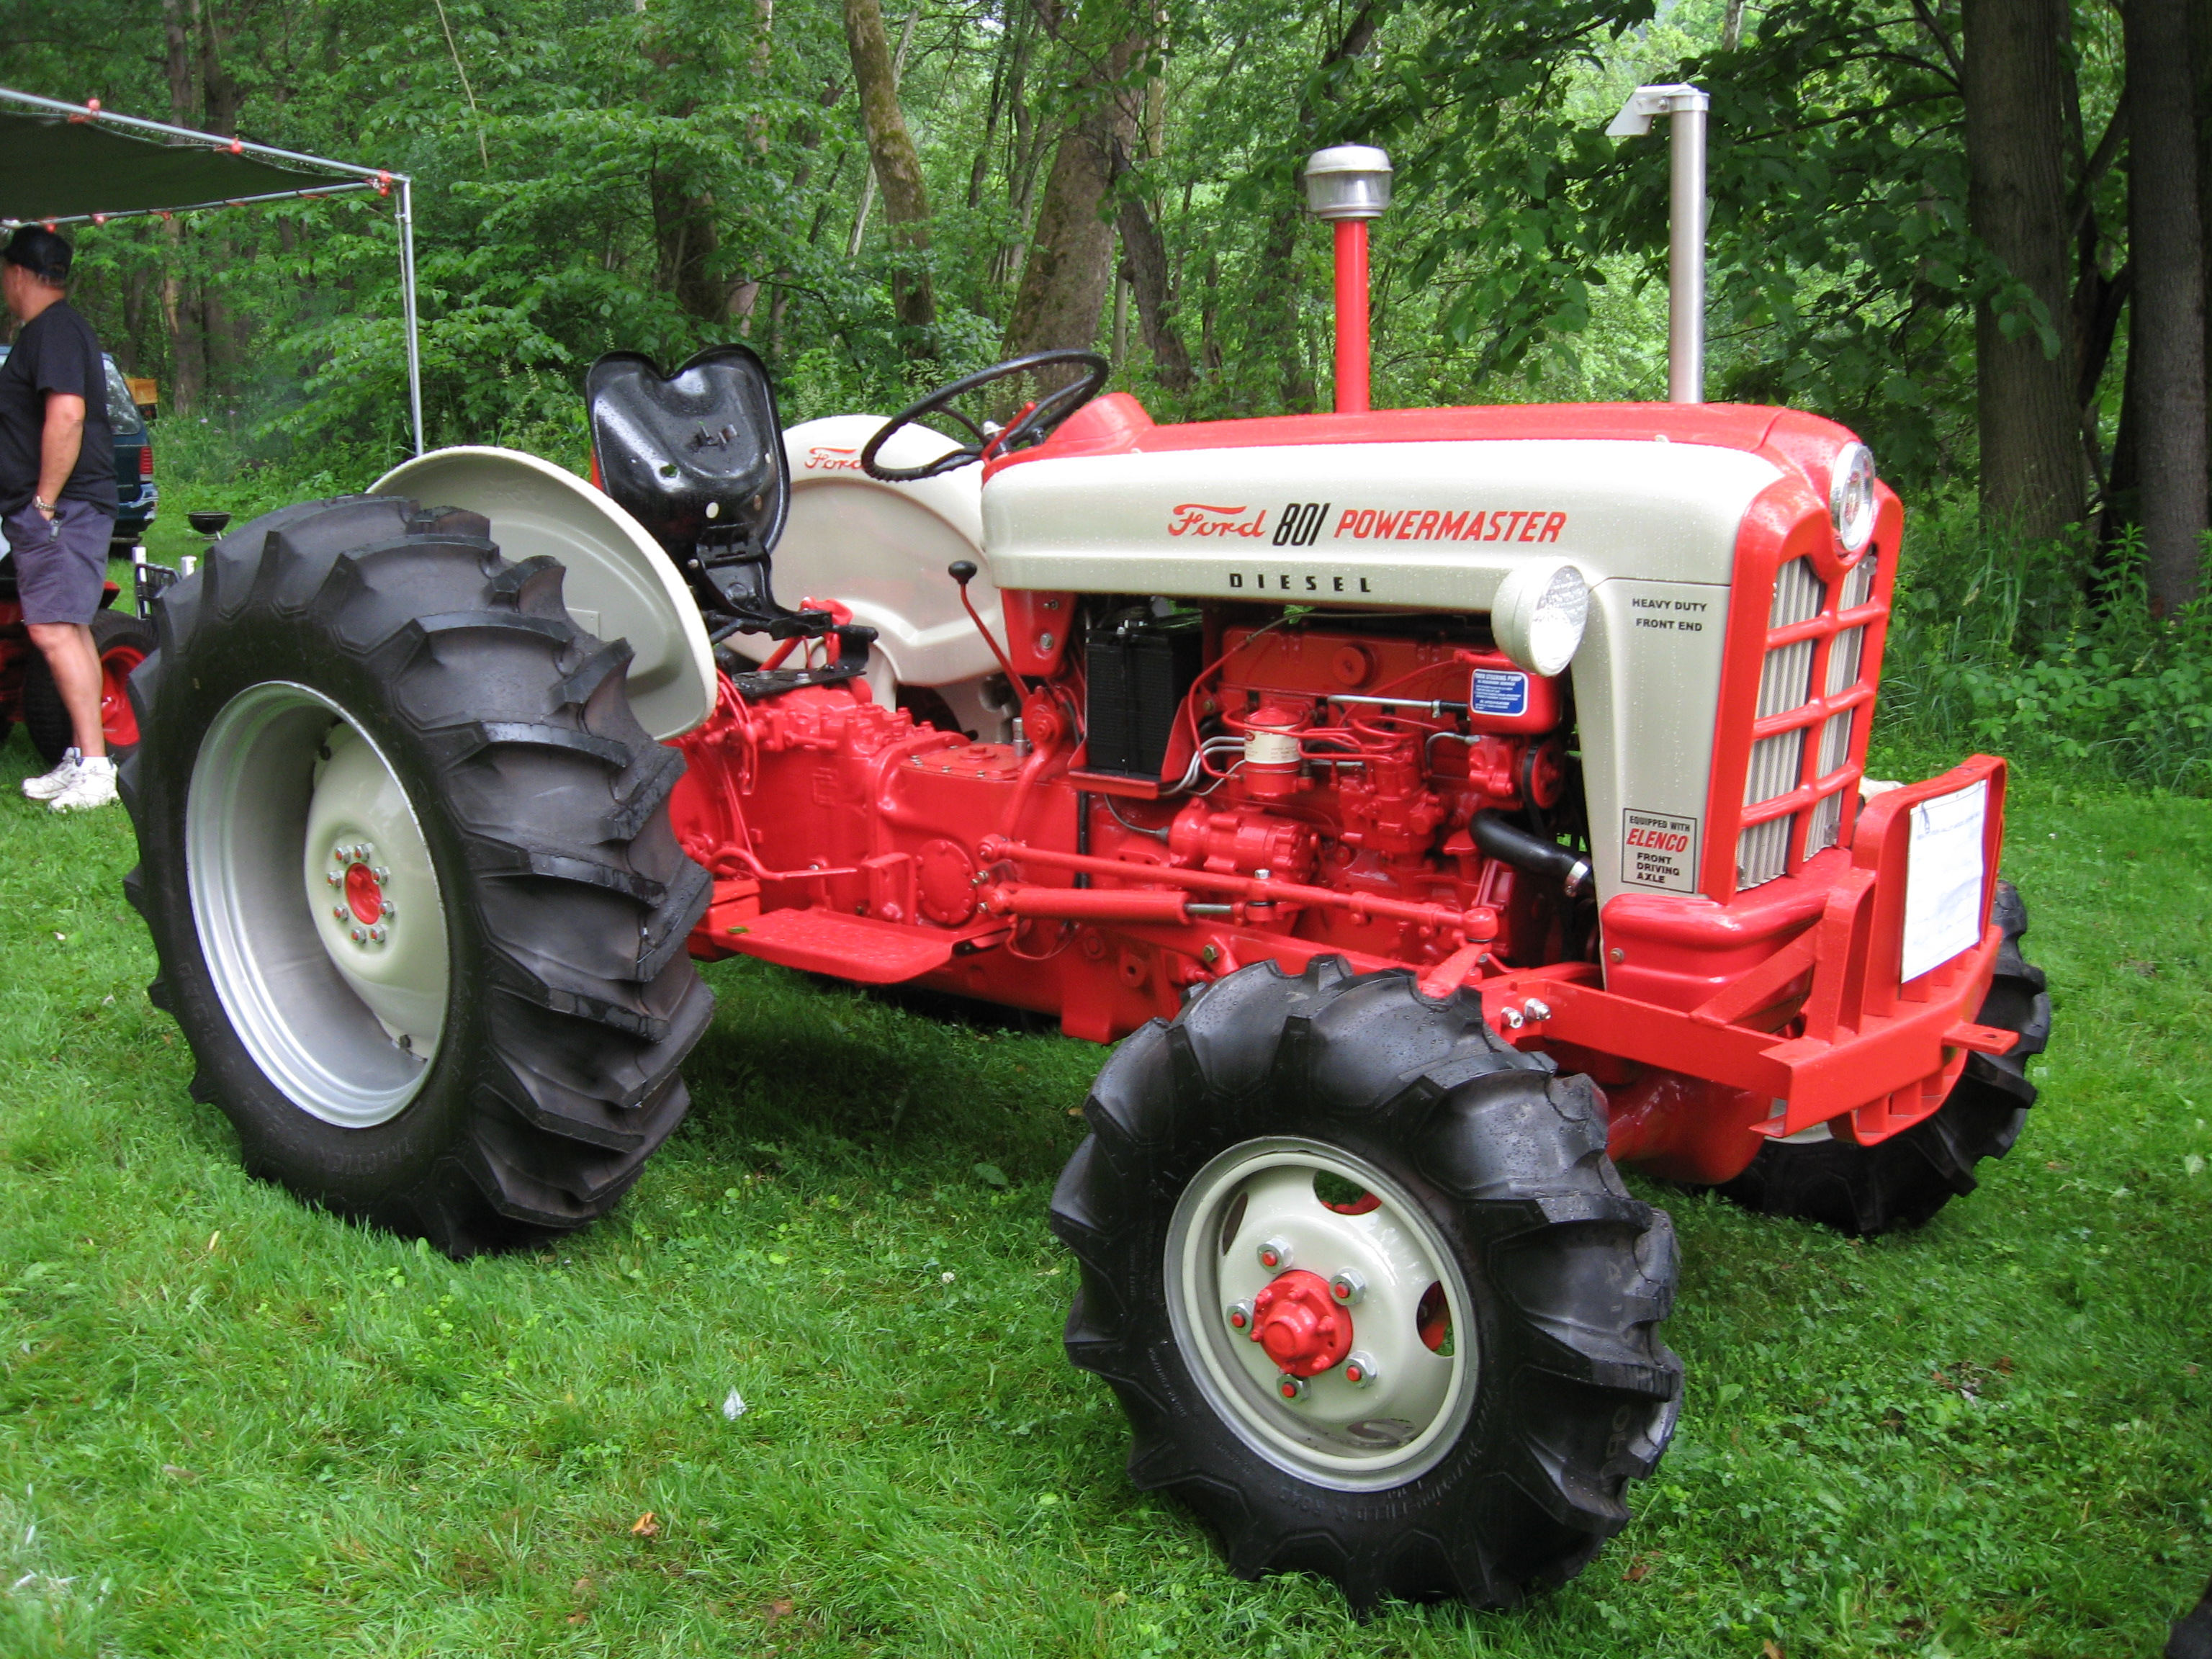 Ford 901 Powermaster Tractor : File ford d powermaster with elenco four wheel drive